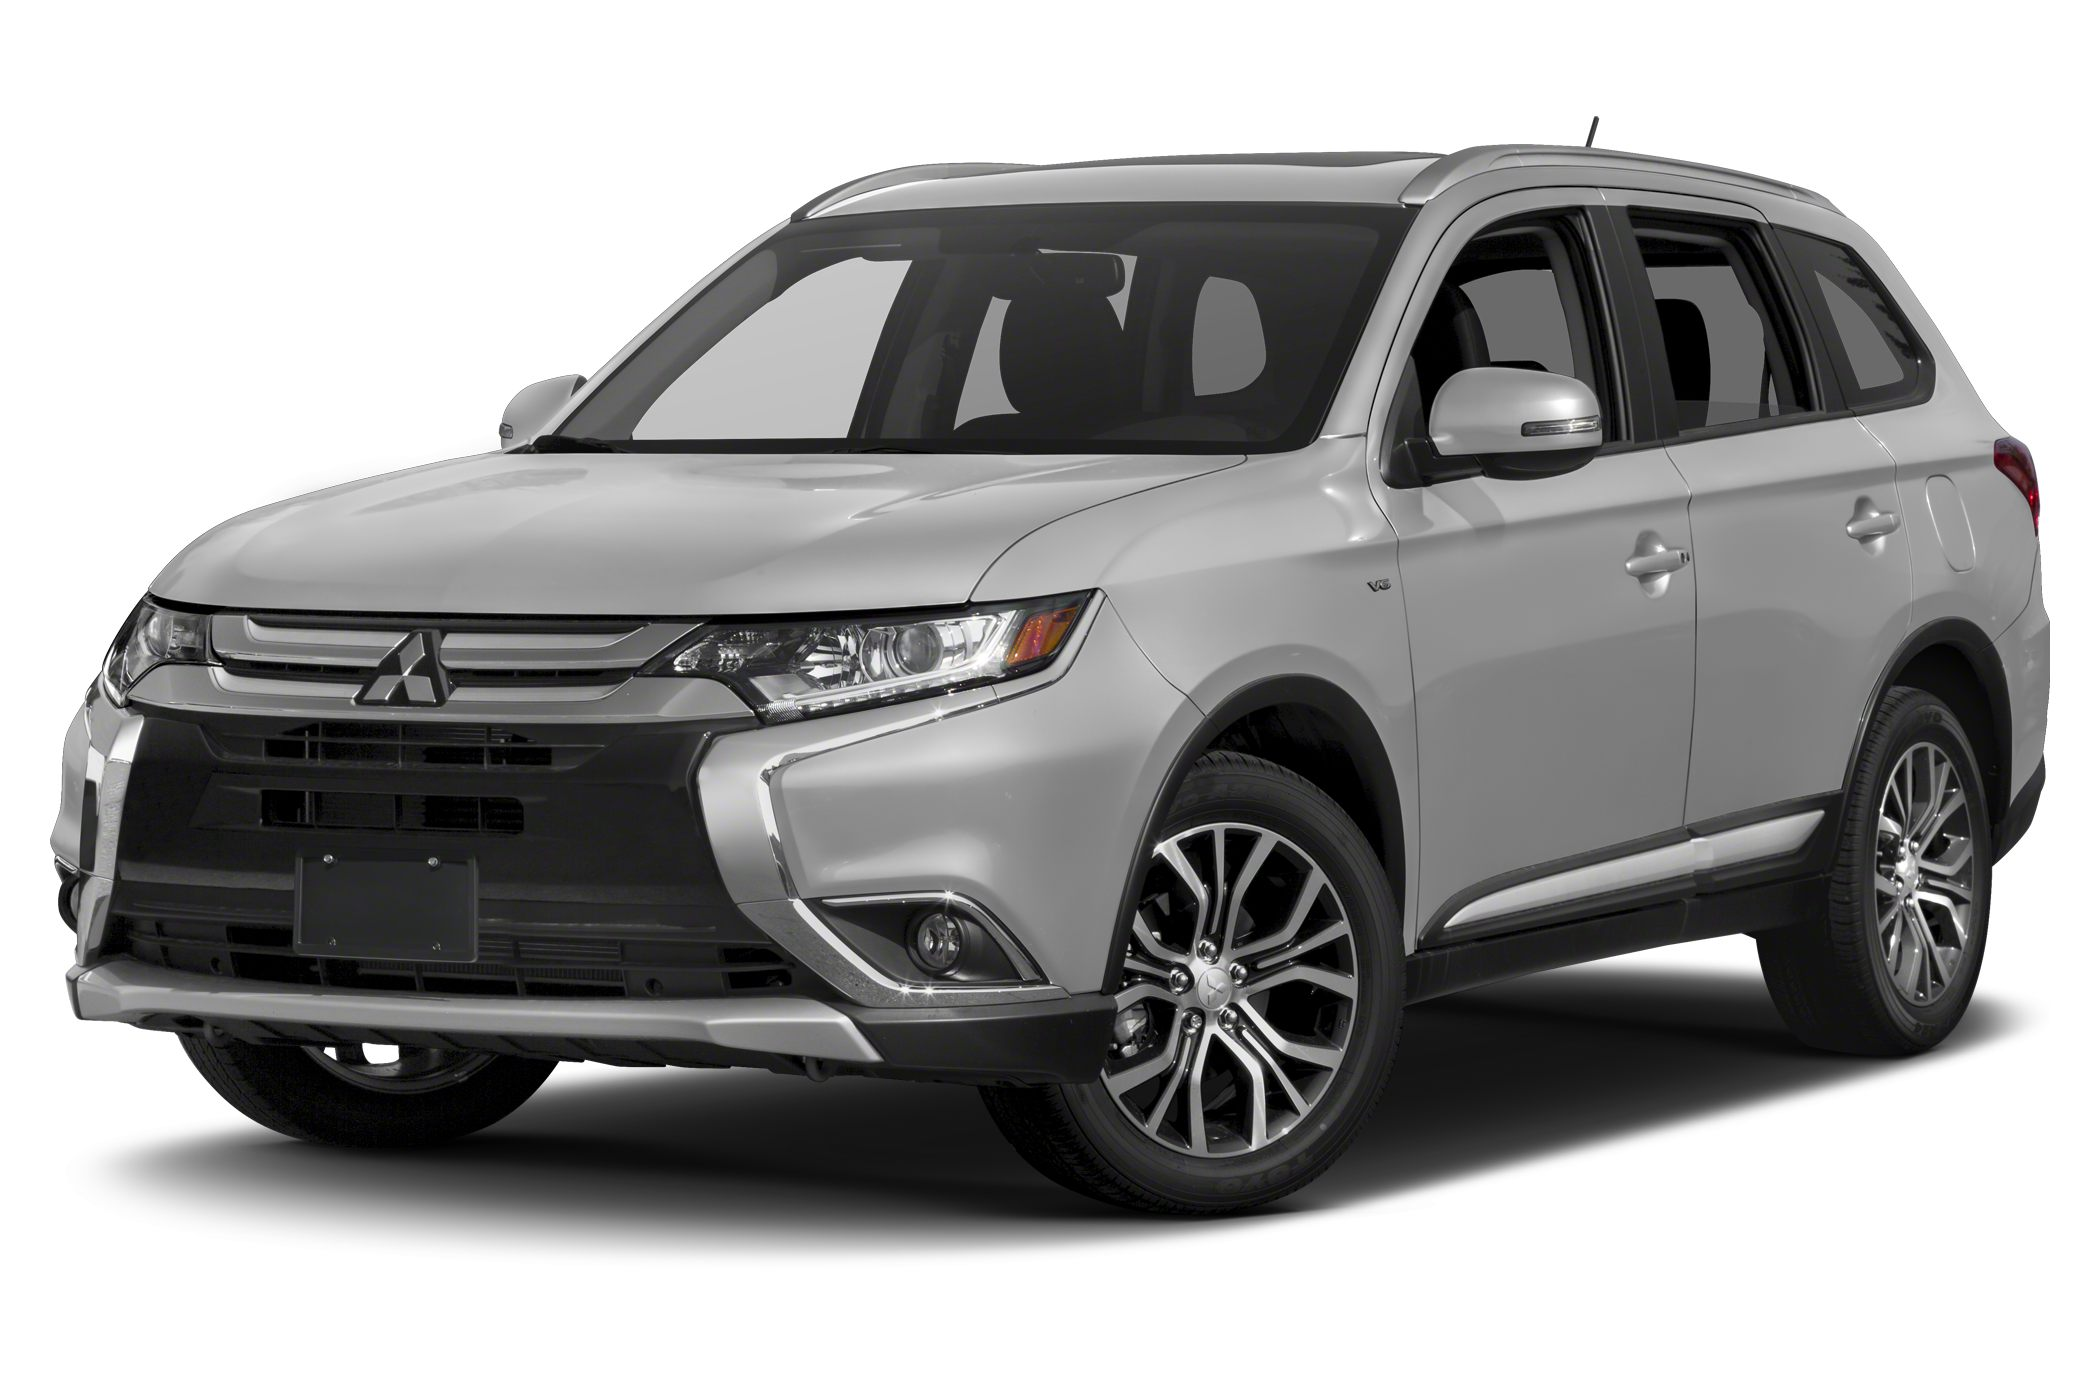 Mitsubishi Outlander Pricing, Reviews and New Model Information - Autoblog